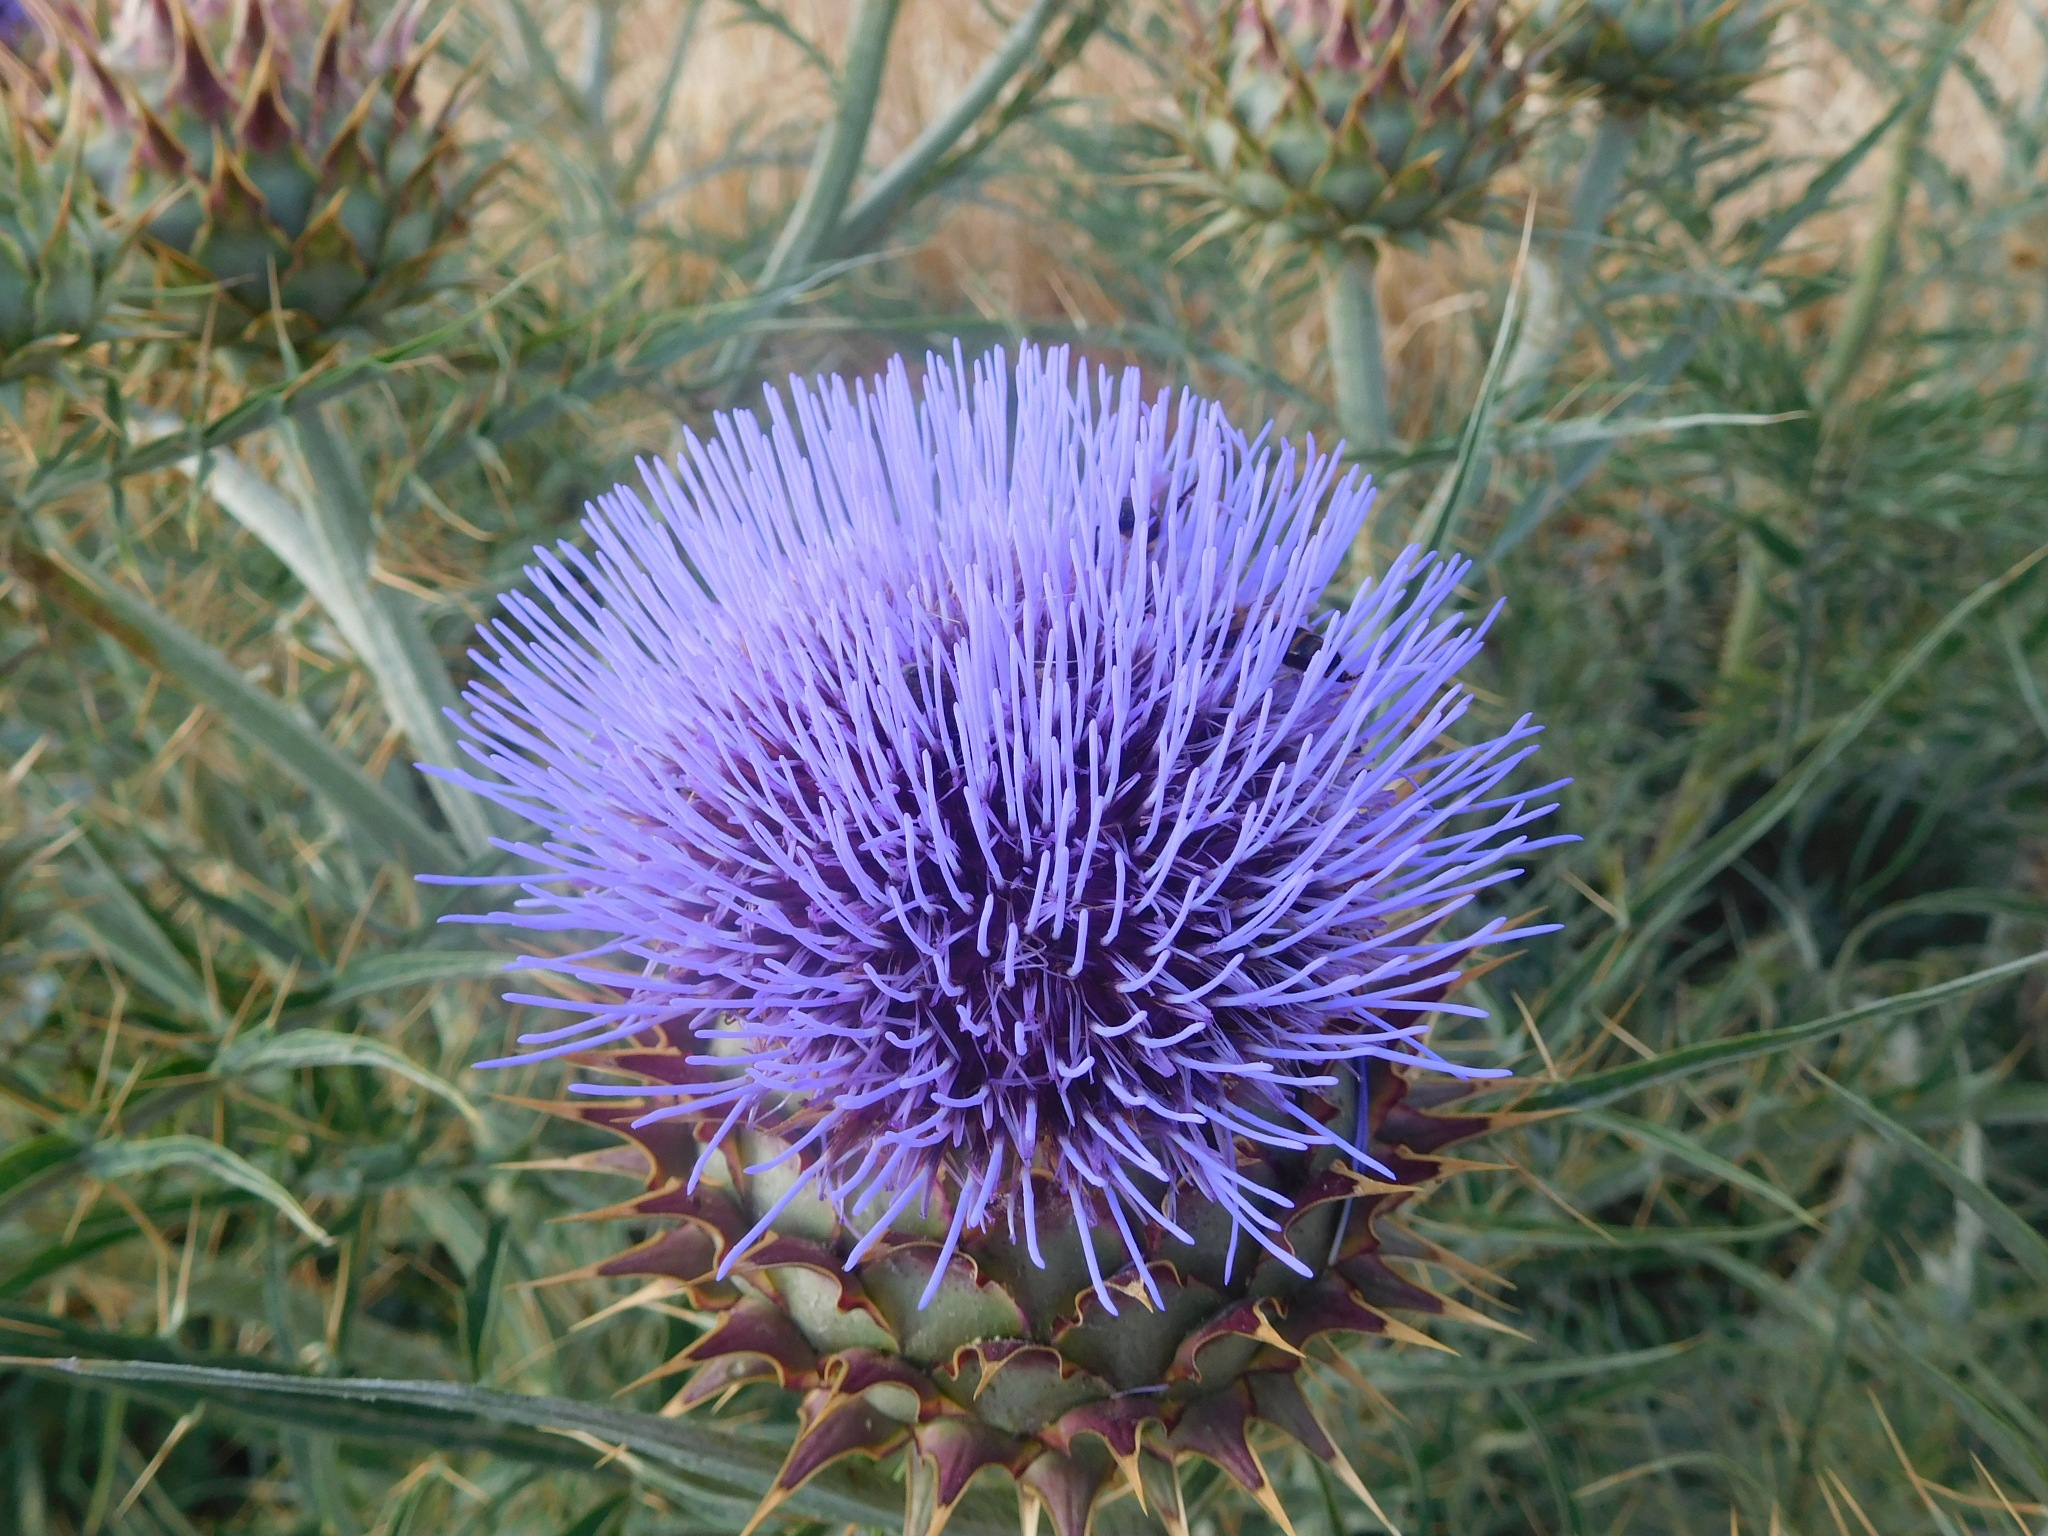 Thistle by Luso